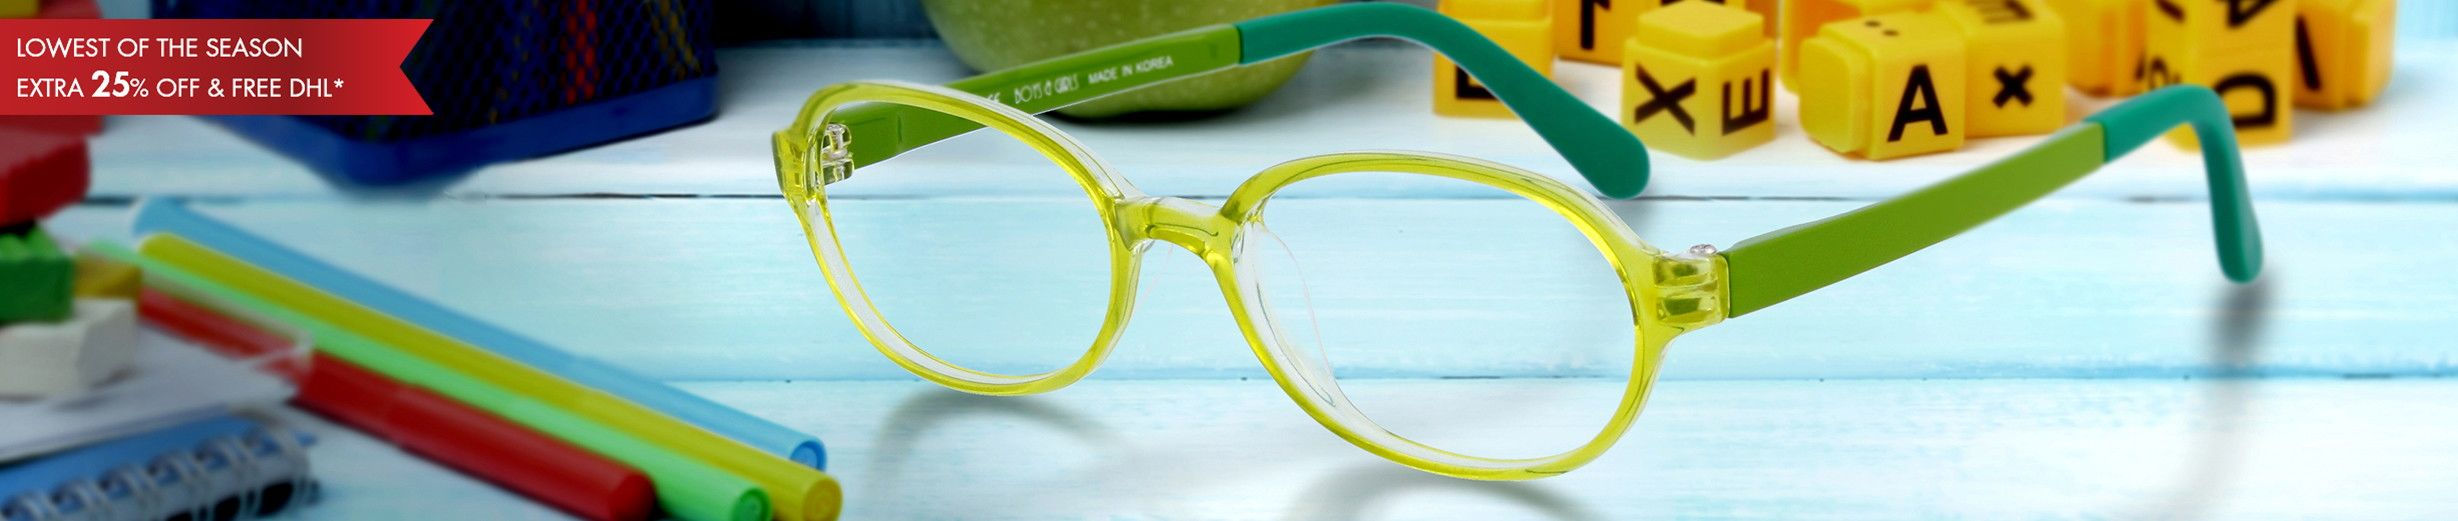 Little Kids (age 4-7) Glasses at up to 70% off retail price. Top quality prescription lenses.